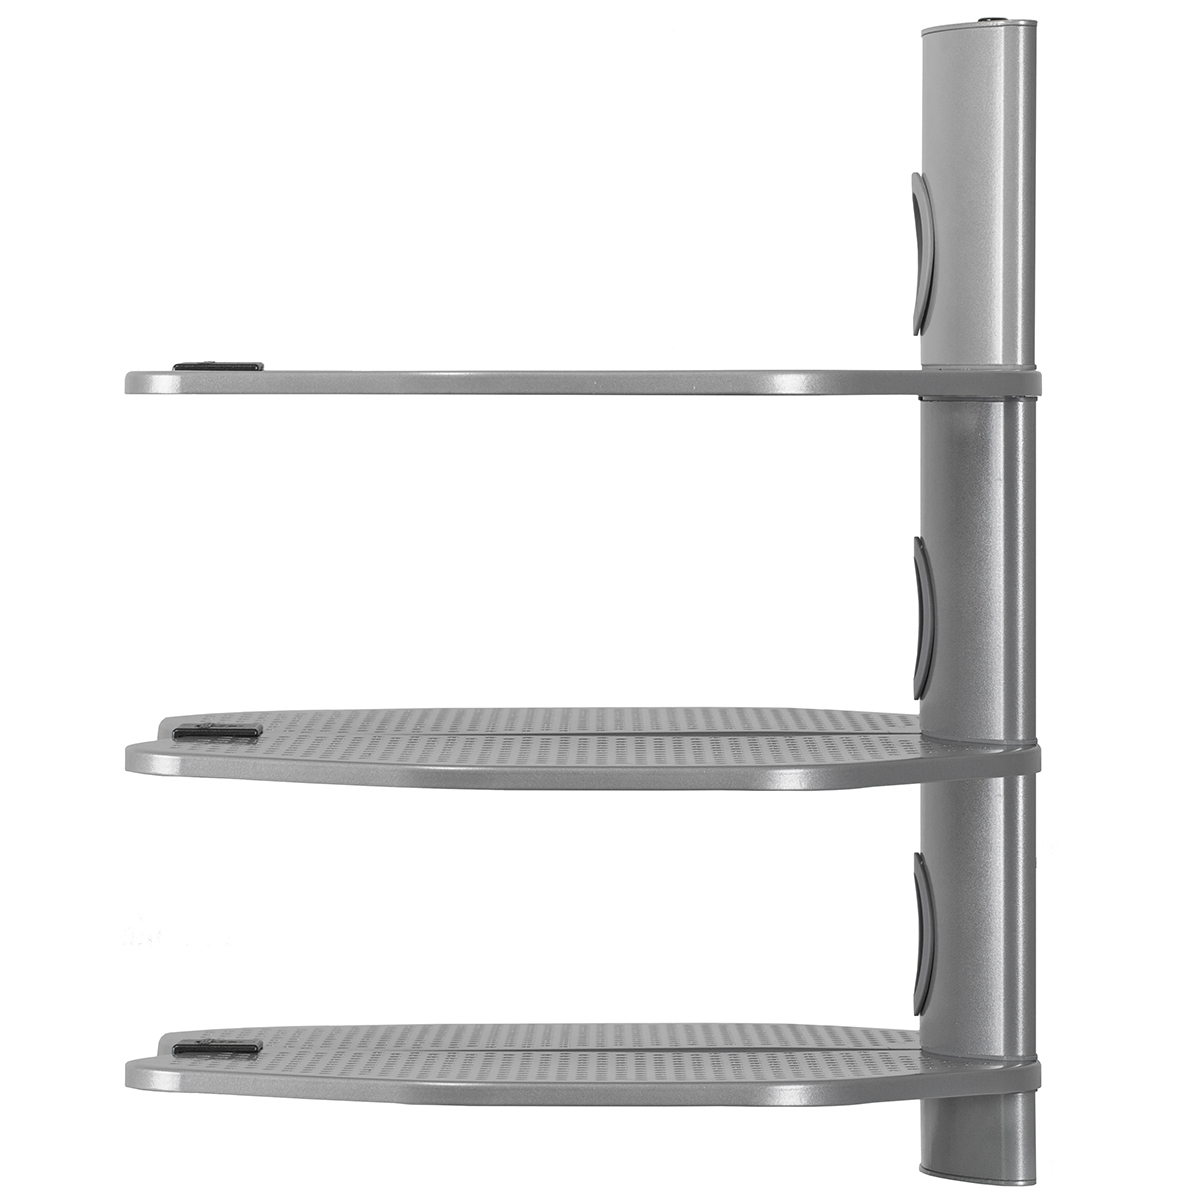 Our ... - Cheetah Mounts AS3S 3 Shelf TV Component Wall Mount Shelving